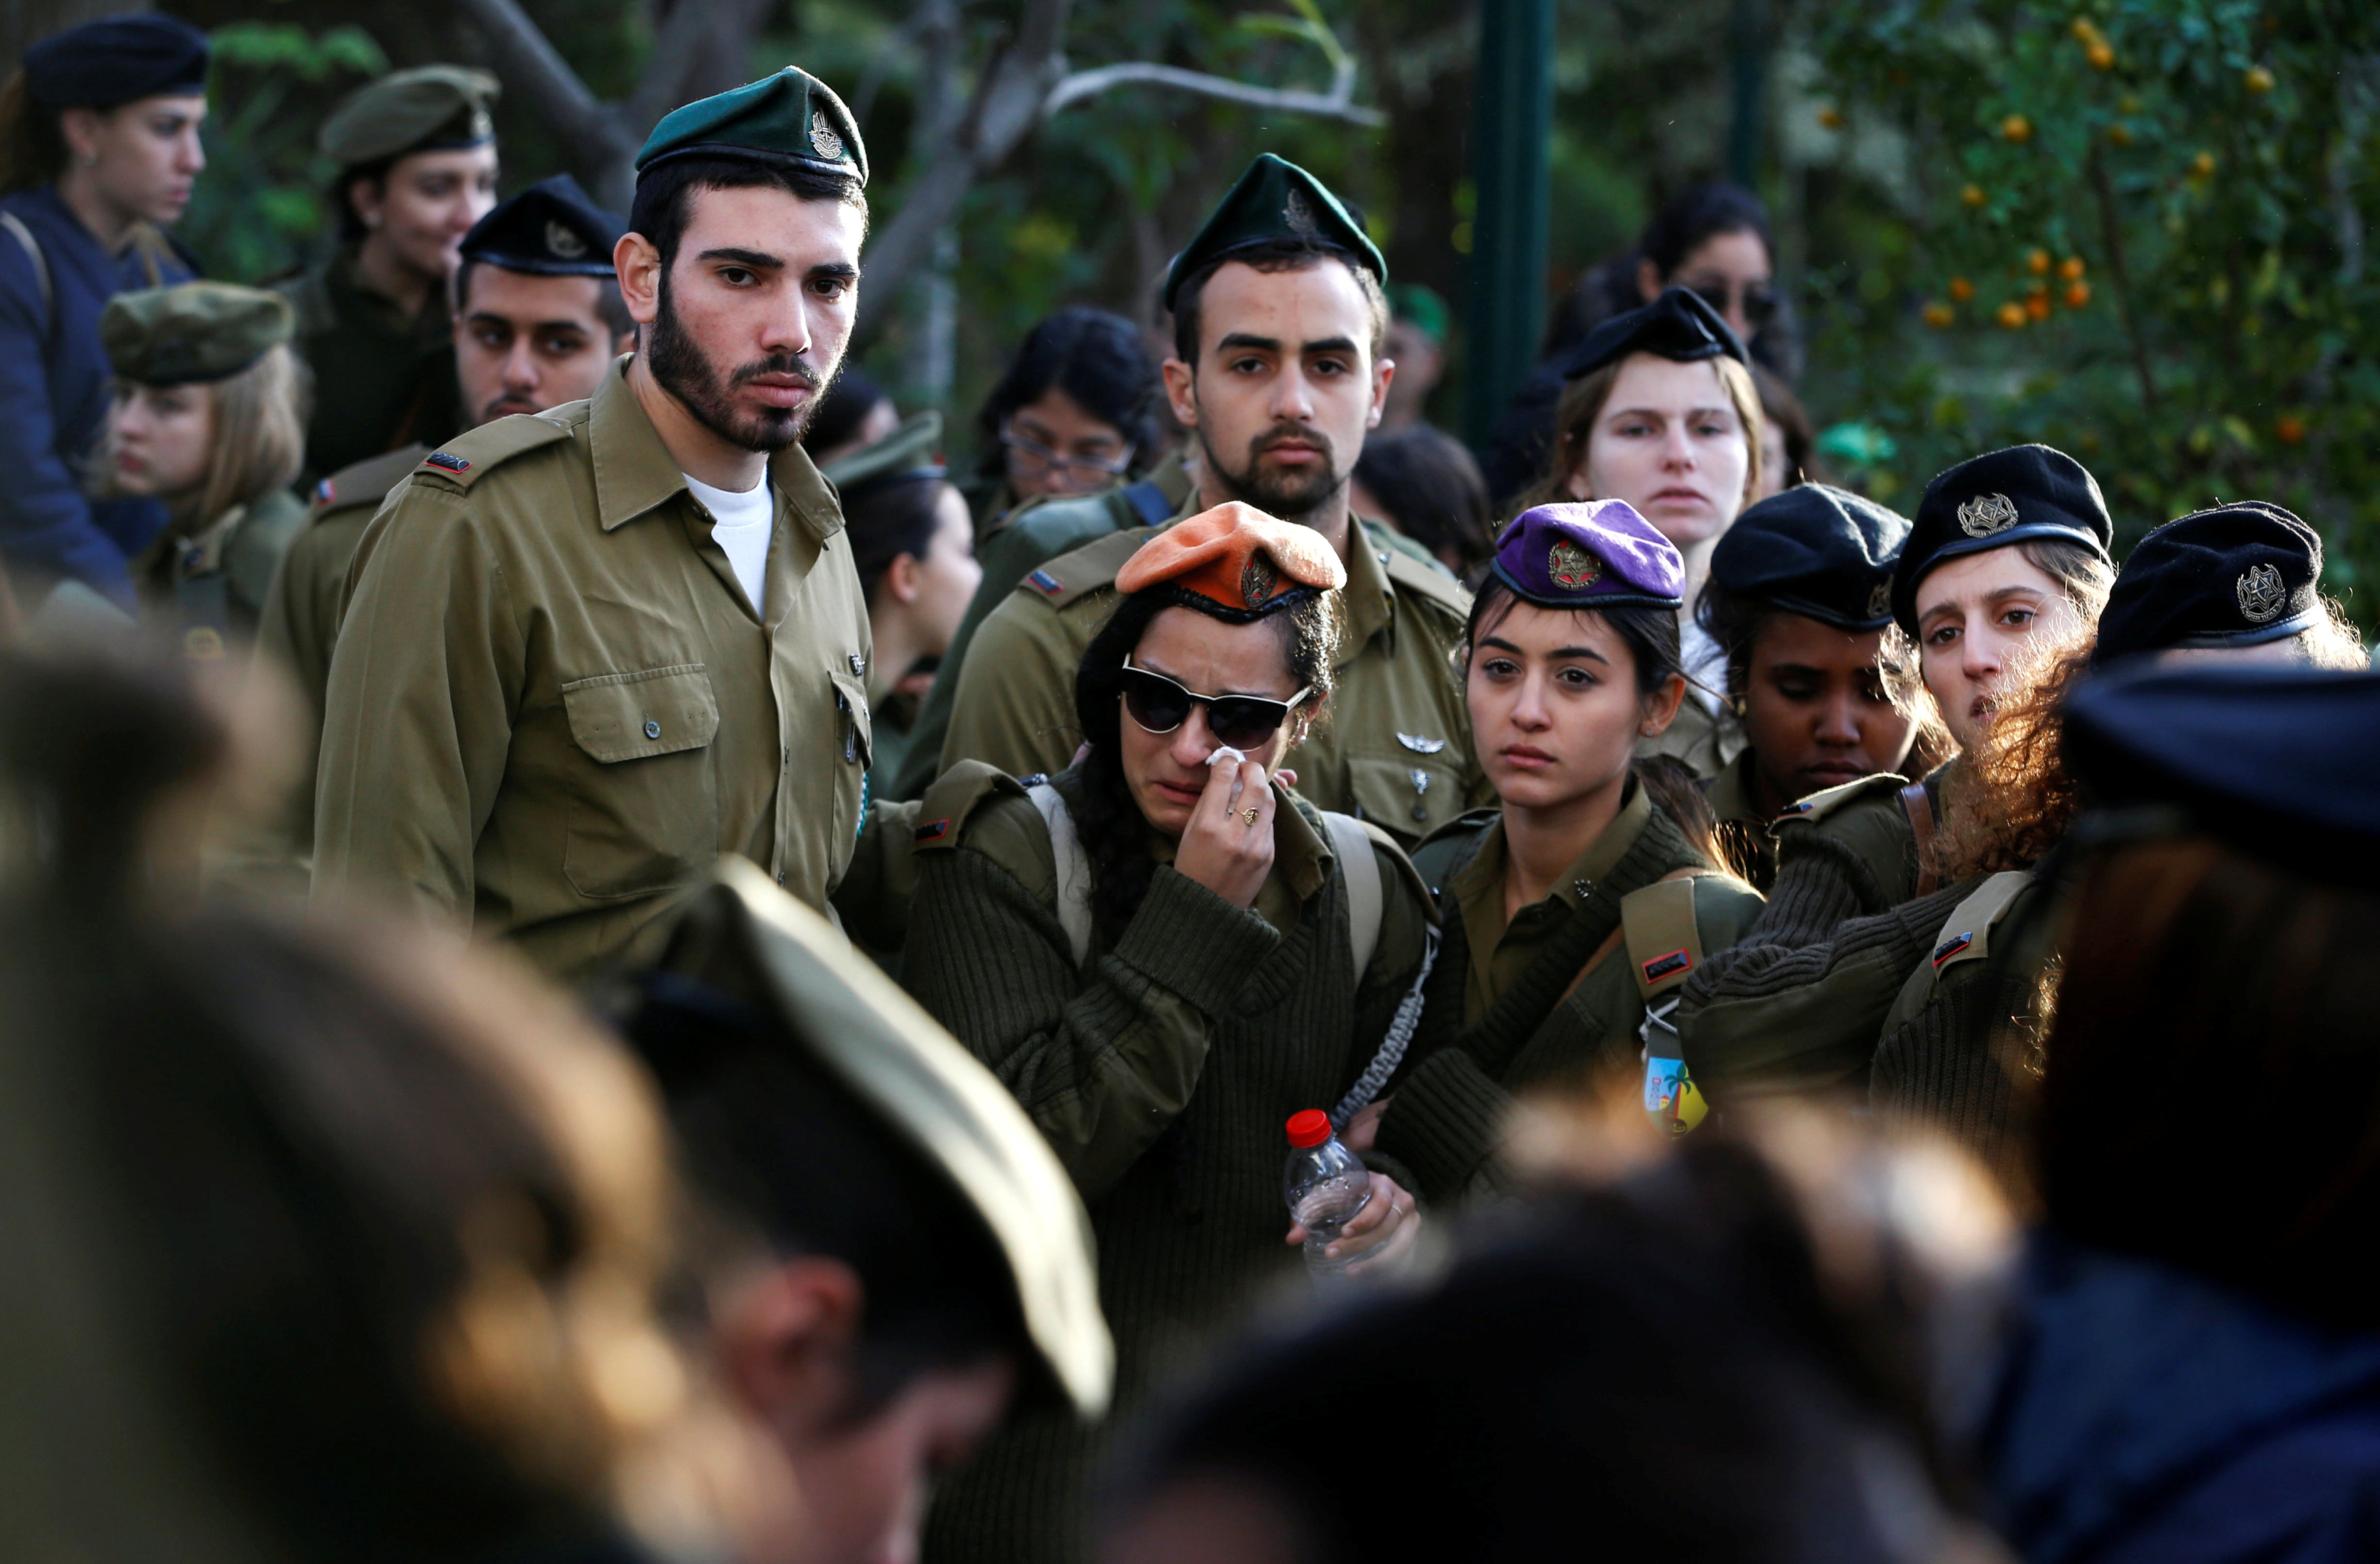 Relatives and friends mourn the death of 4 Israeli soldiers